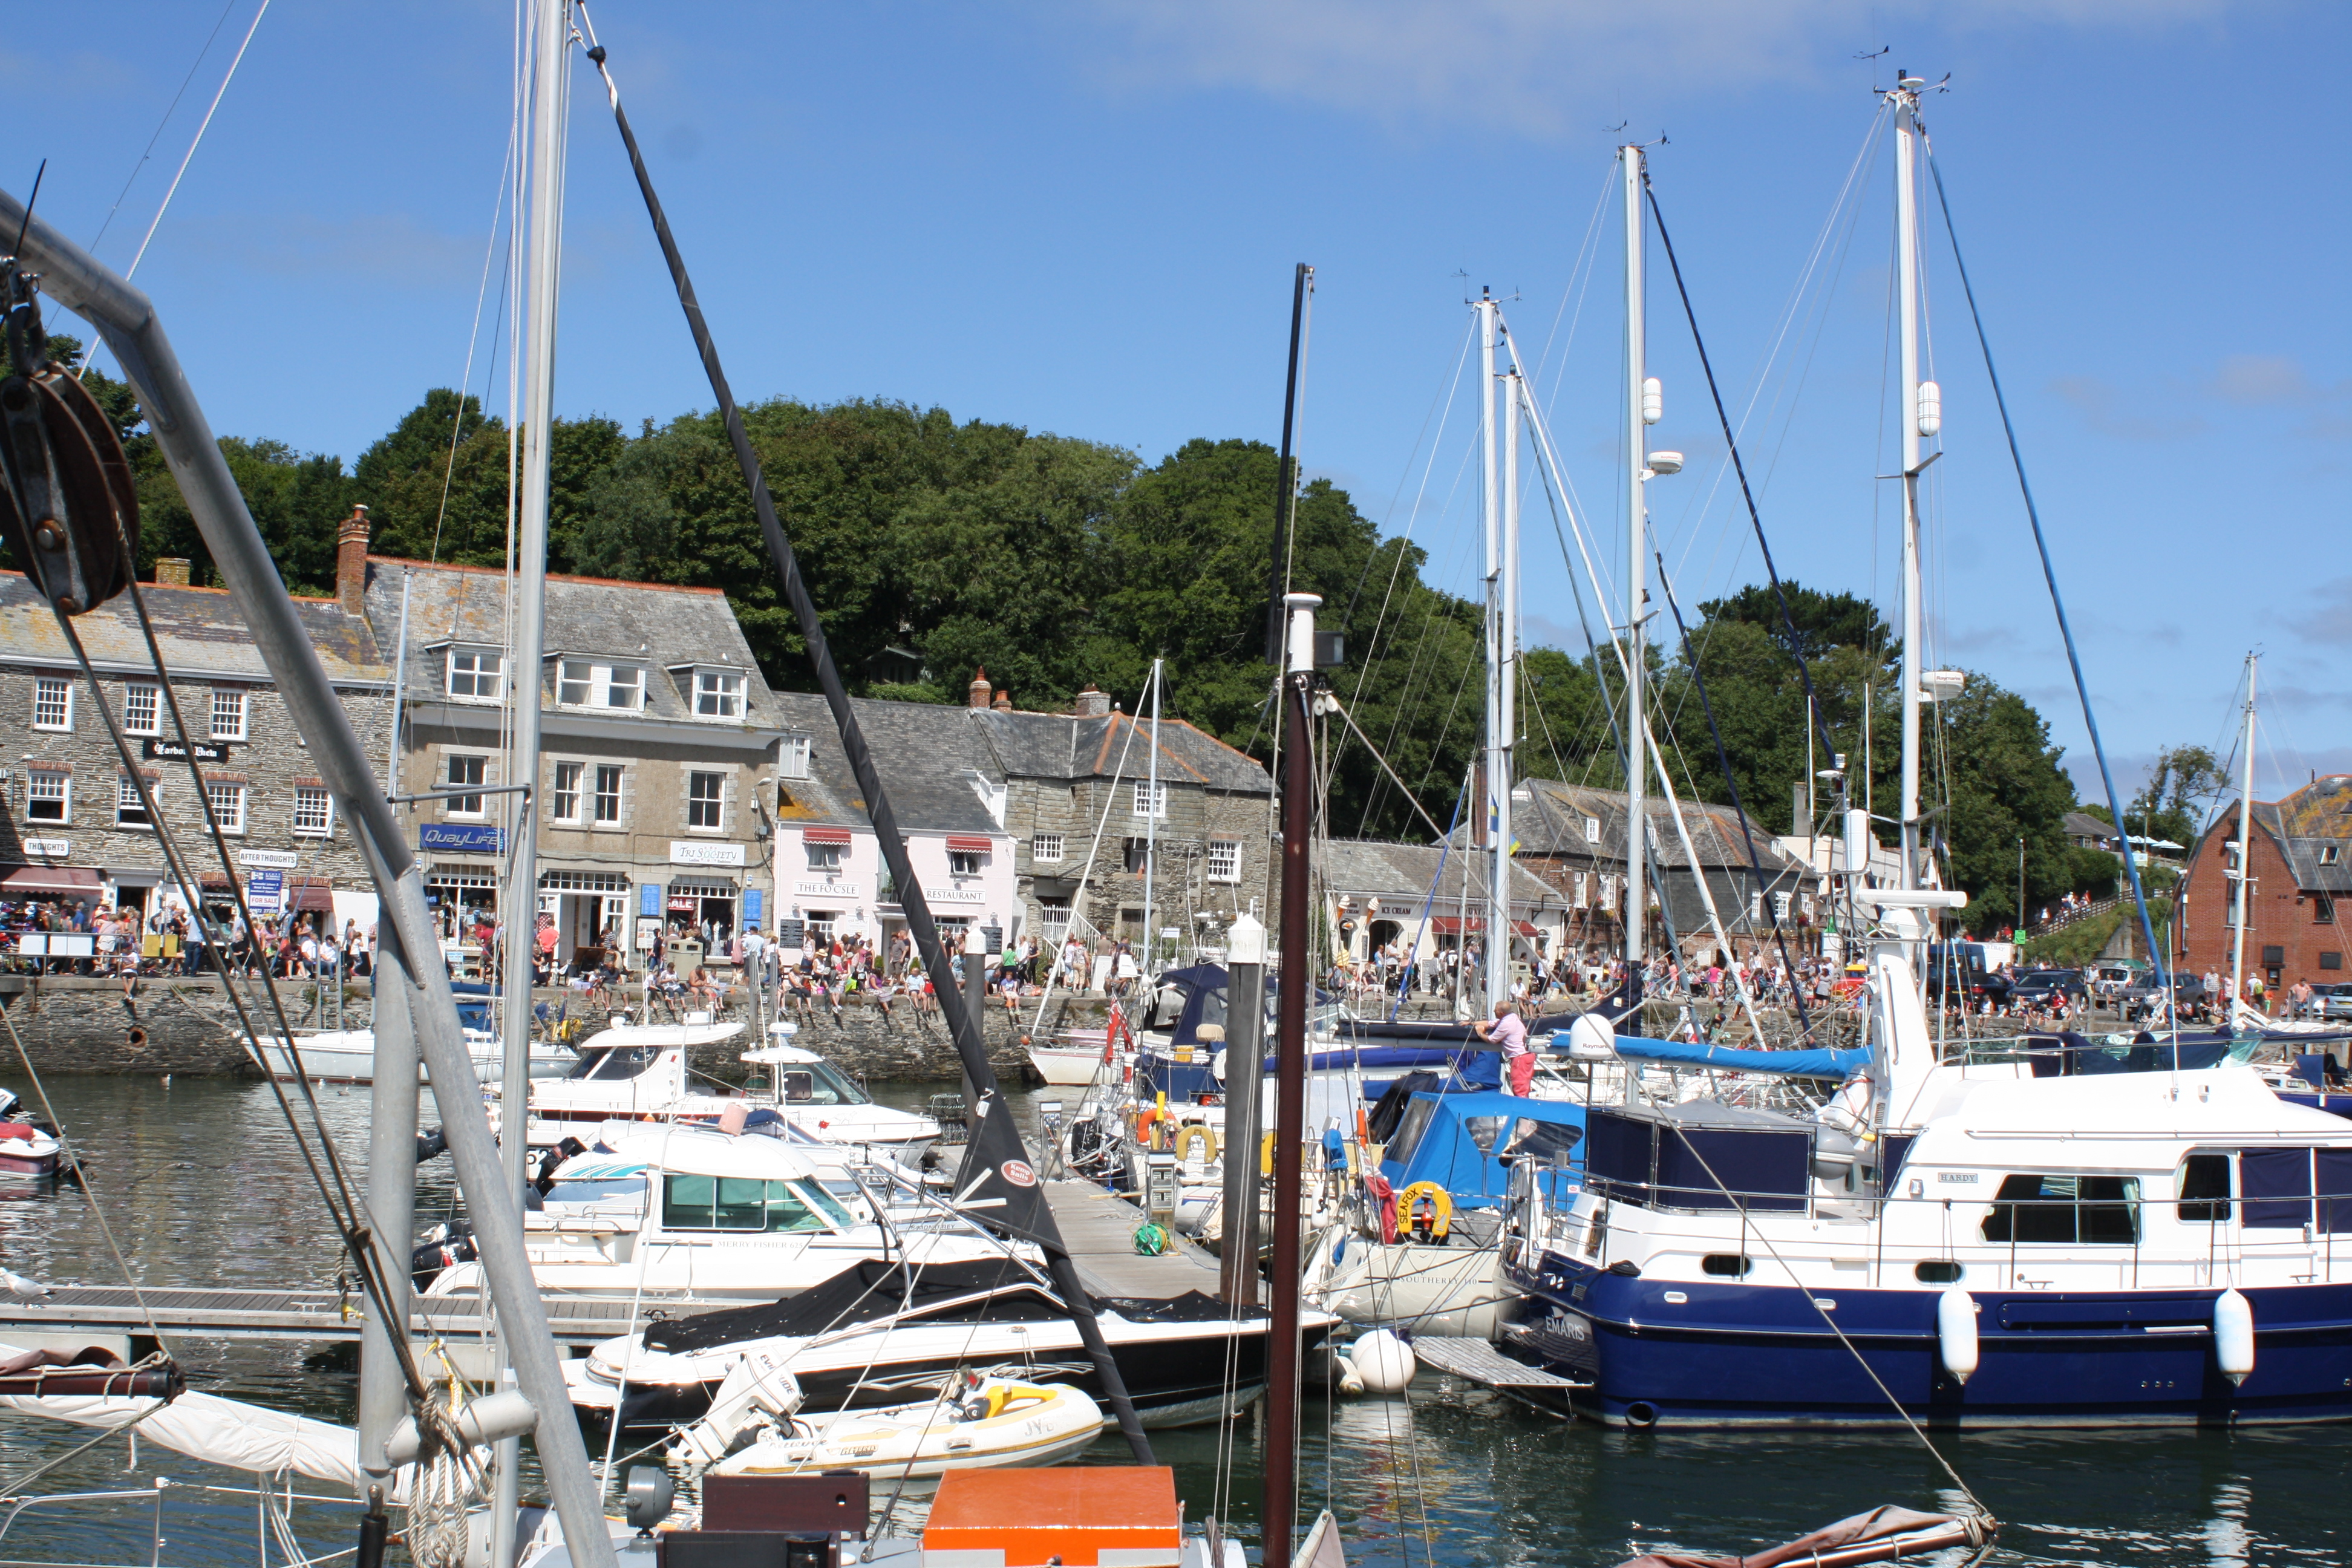 Favourite place, The Gallery, Padstow, boats